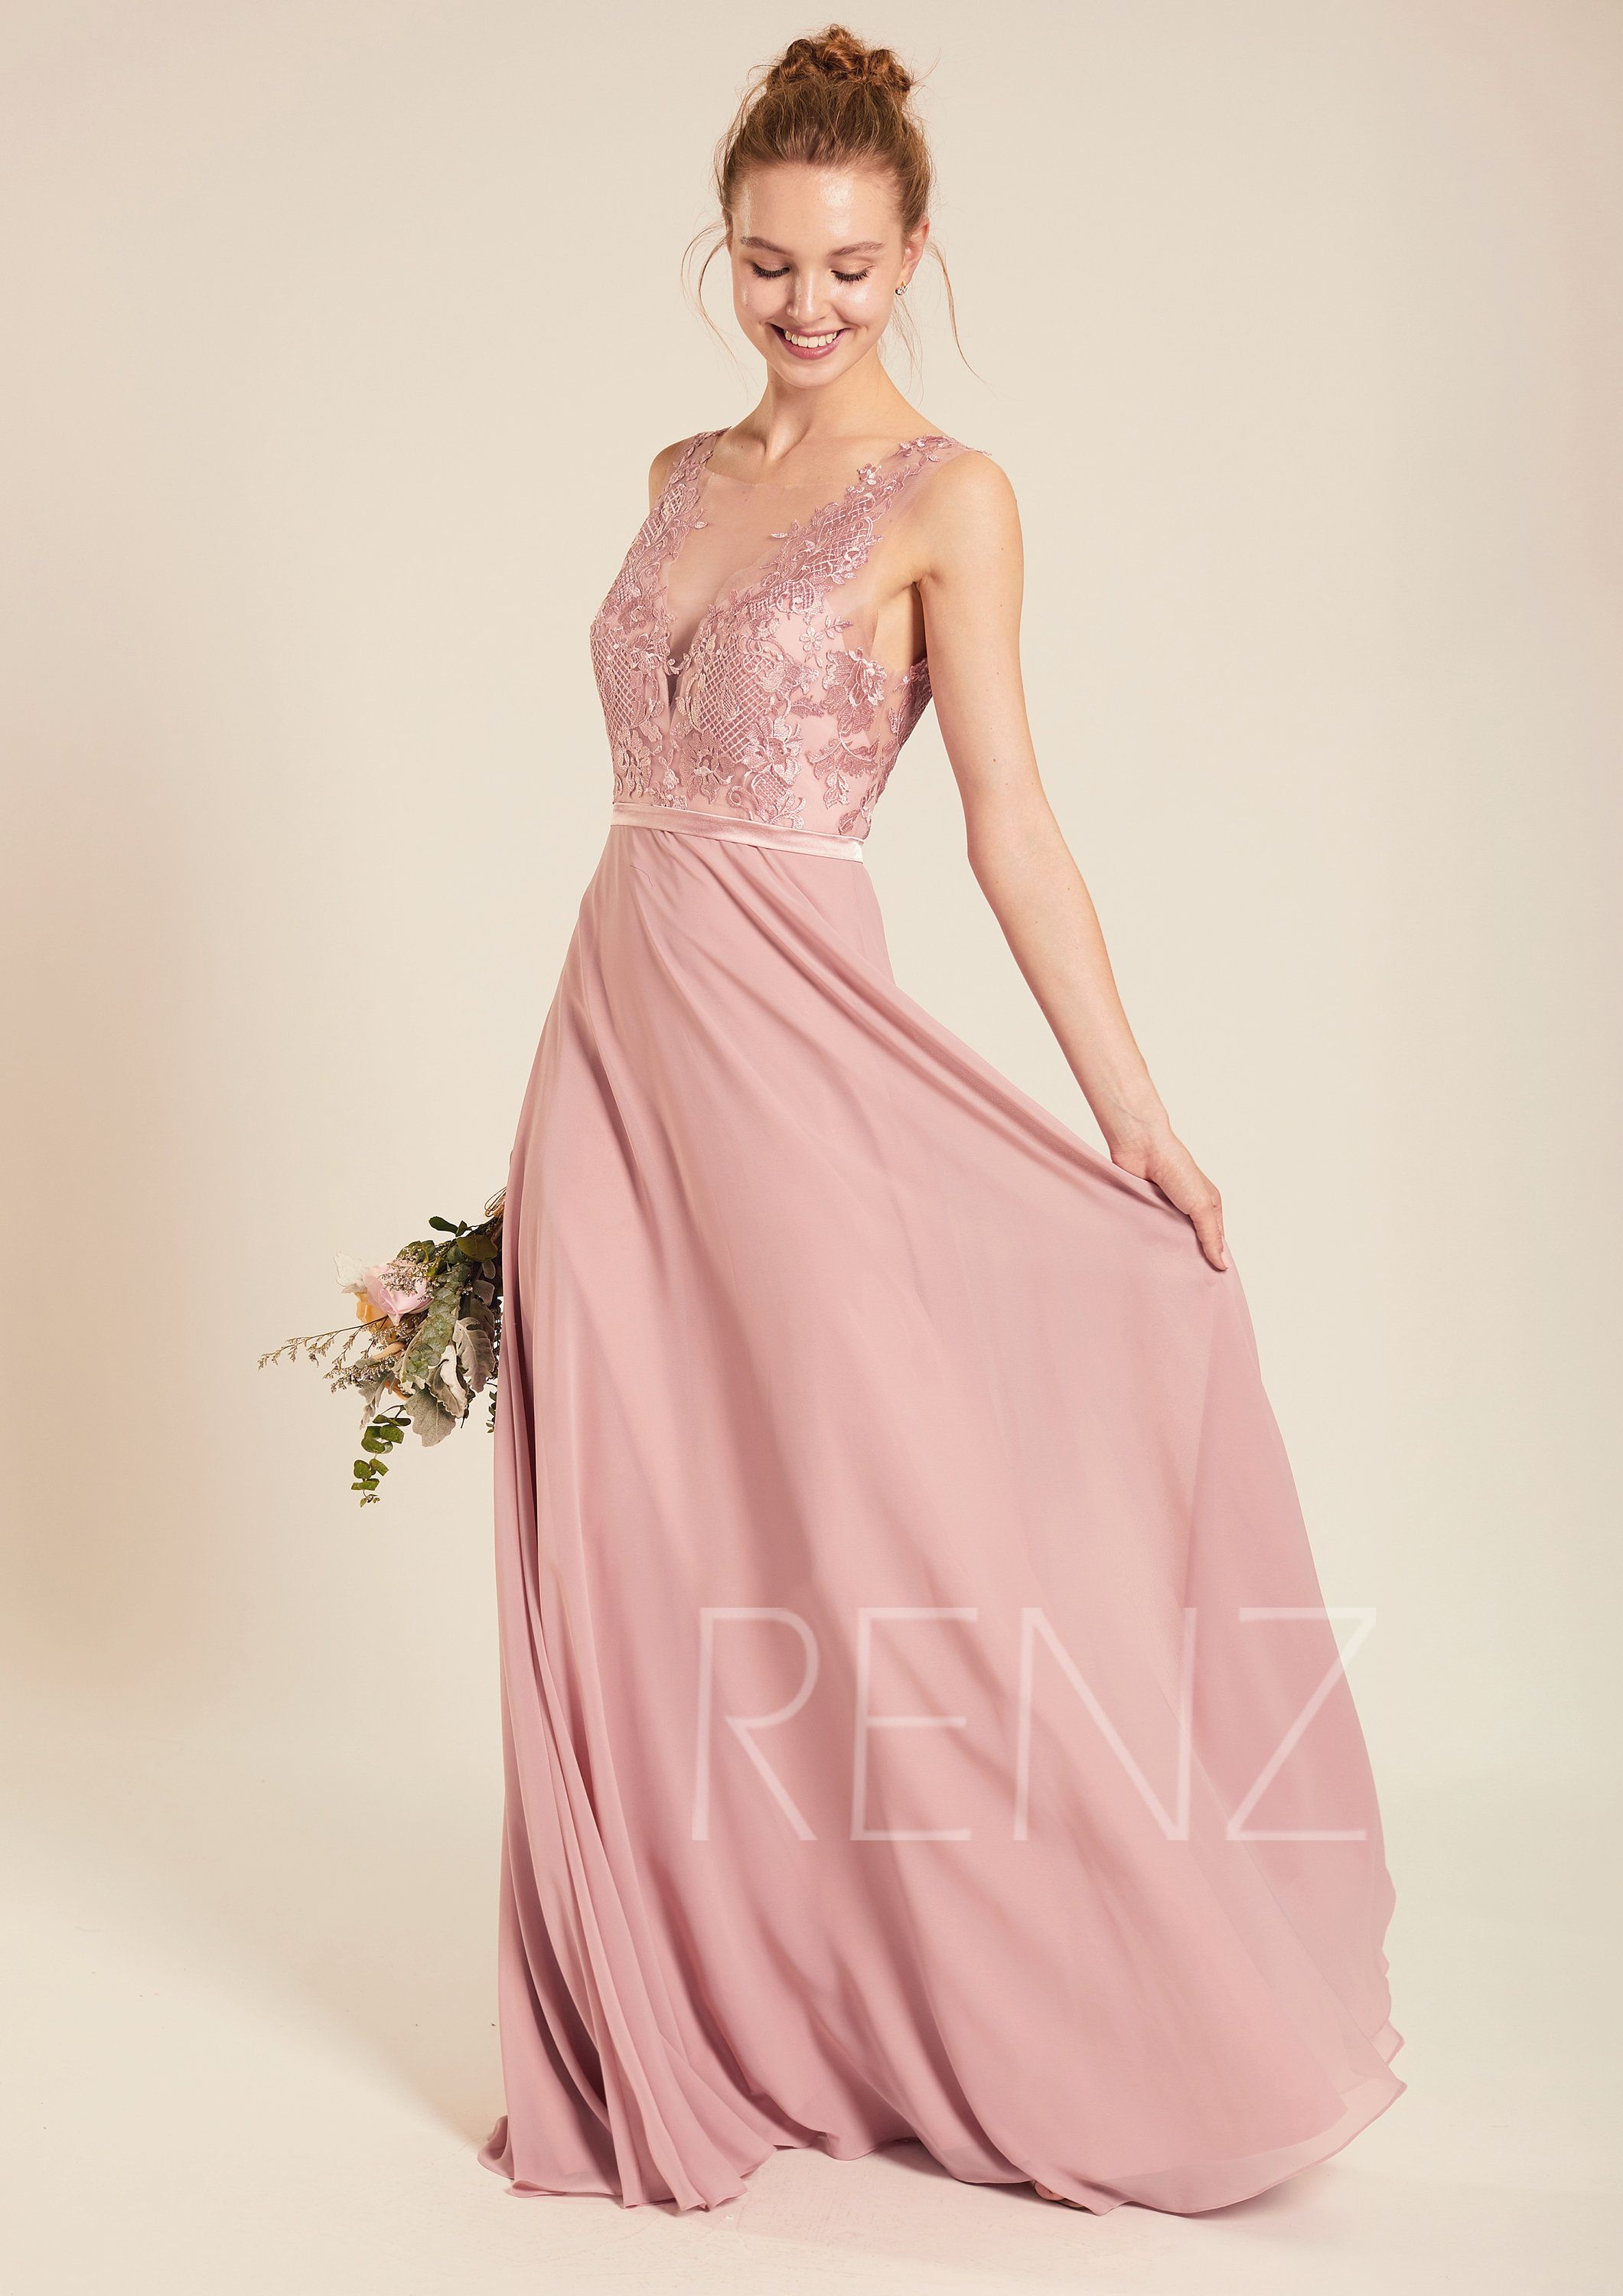 Bridesmaid Dress Dusty Rose Chiffon Dress Wedding Dress Illusion Lace V Neck Maxi Dress V Back Party Dress Sleeveless Evening Dress L397b In 2020 Altrosa Brautjungfernkleider Kleid Altrosa Und Illusion Kleid